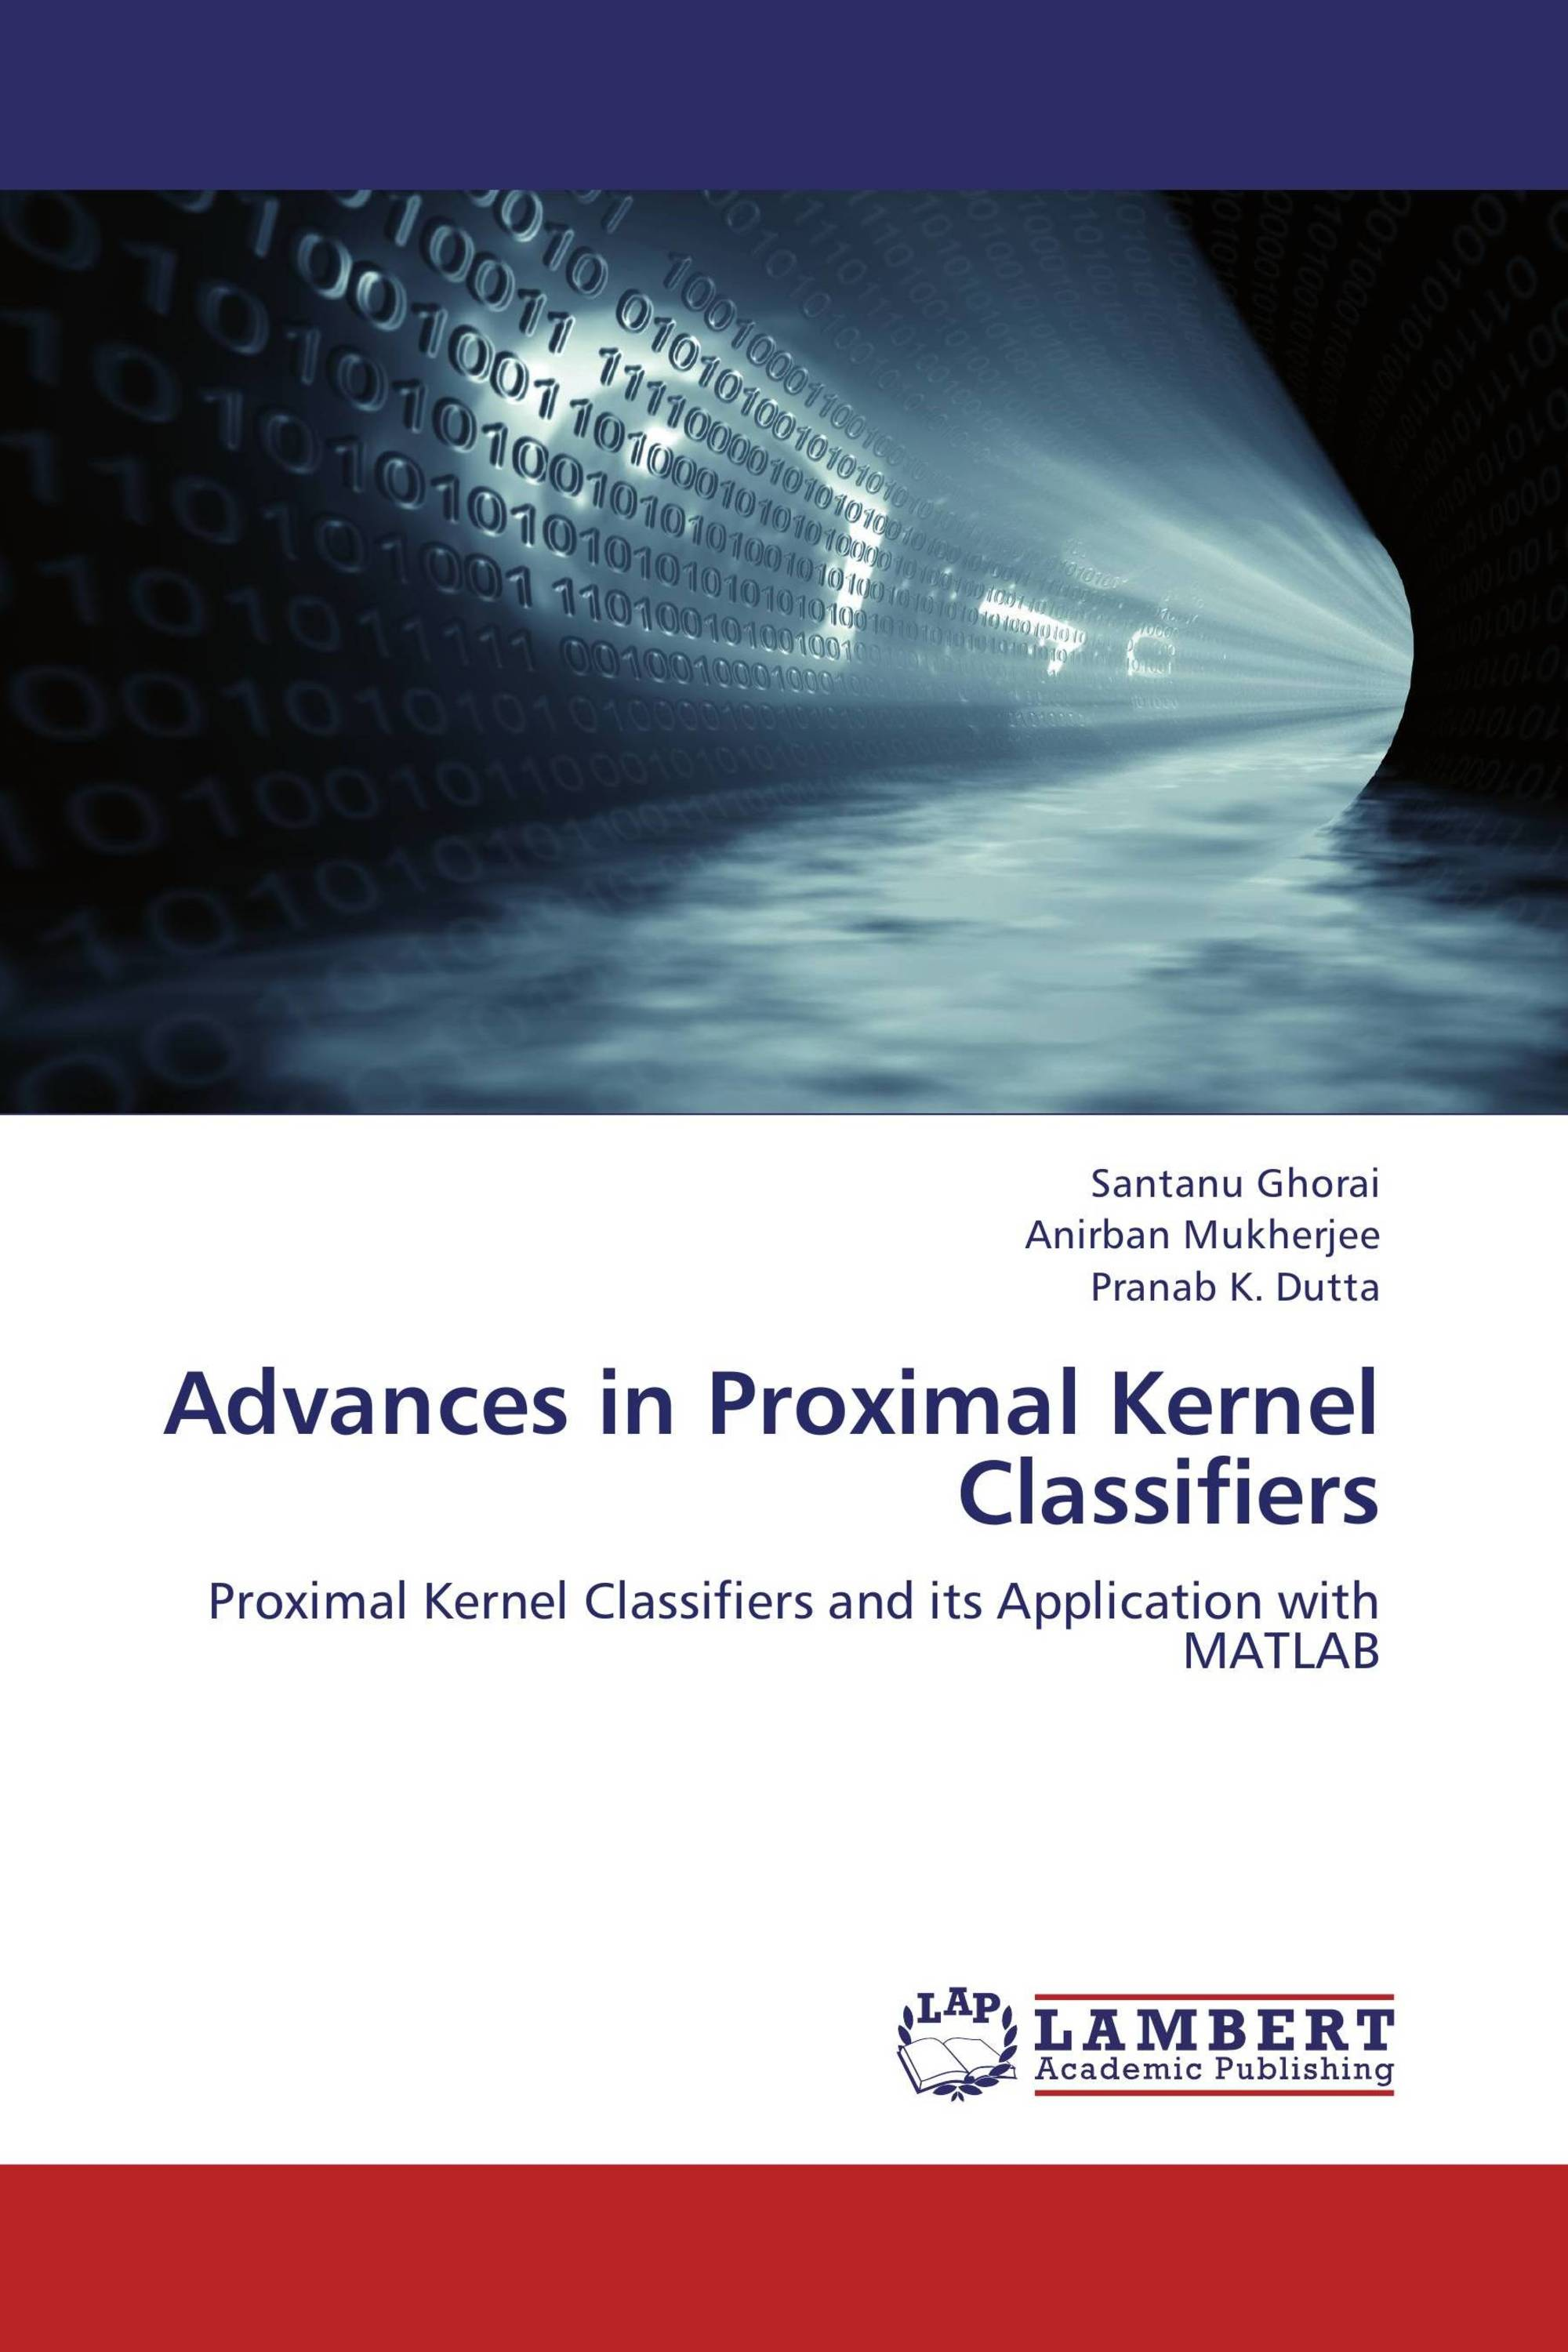 Advances in Proximal Kernel Classifiers